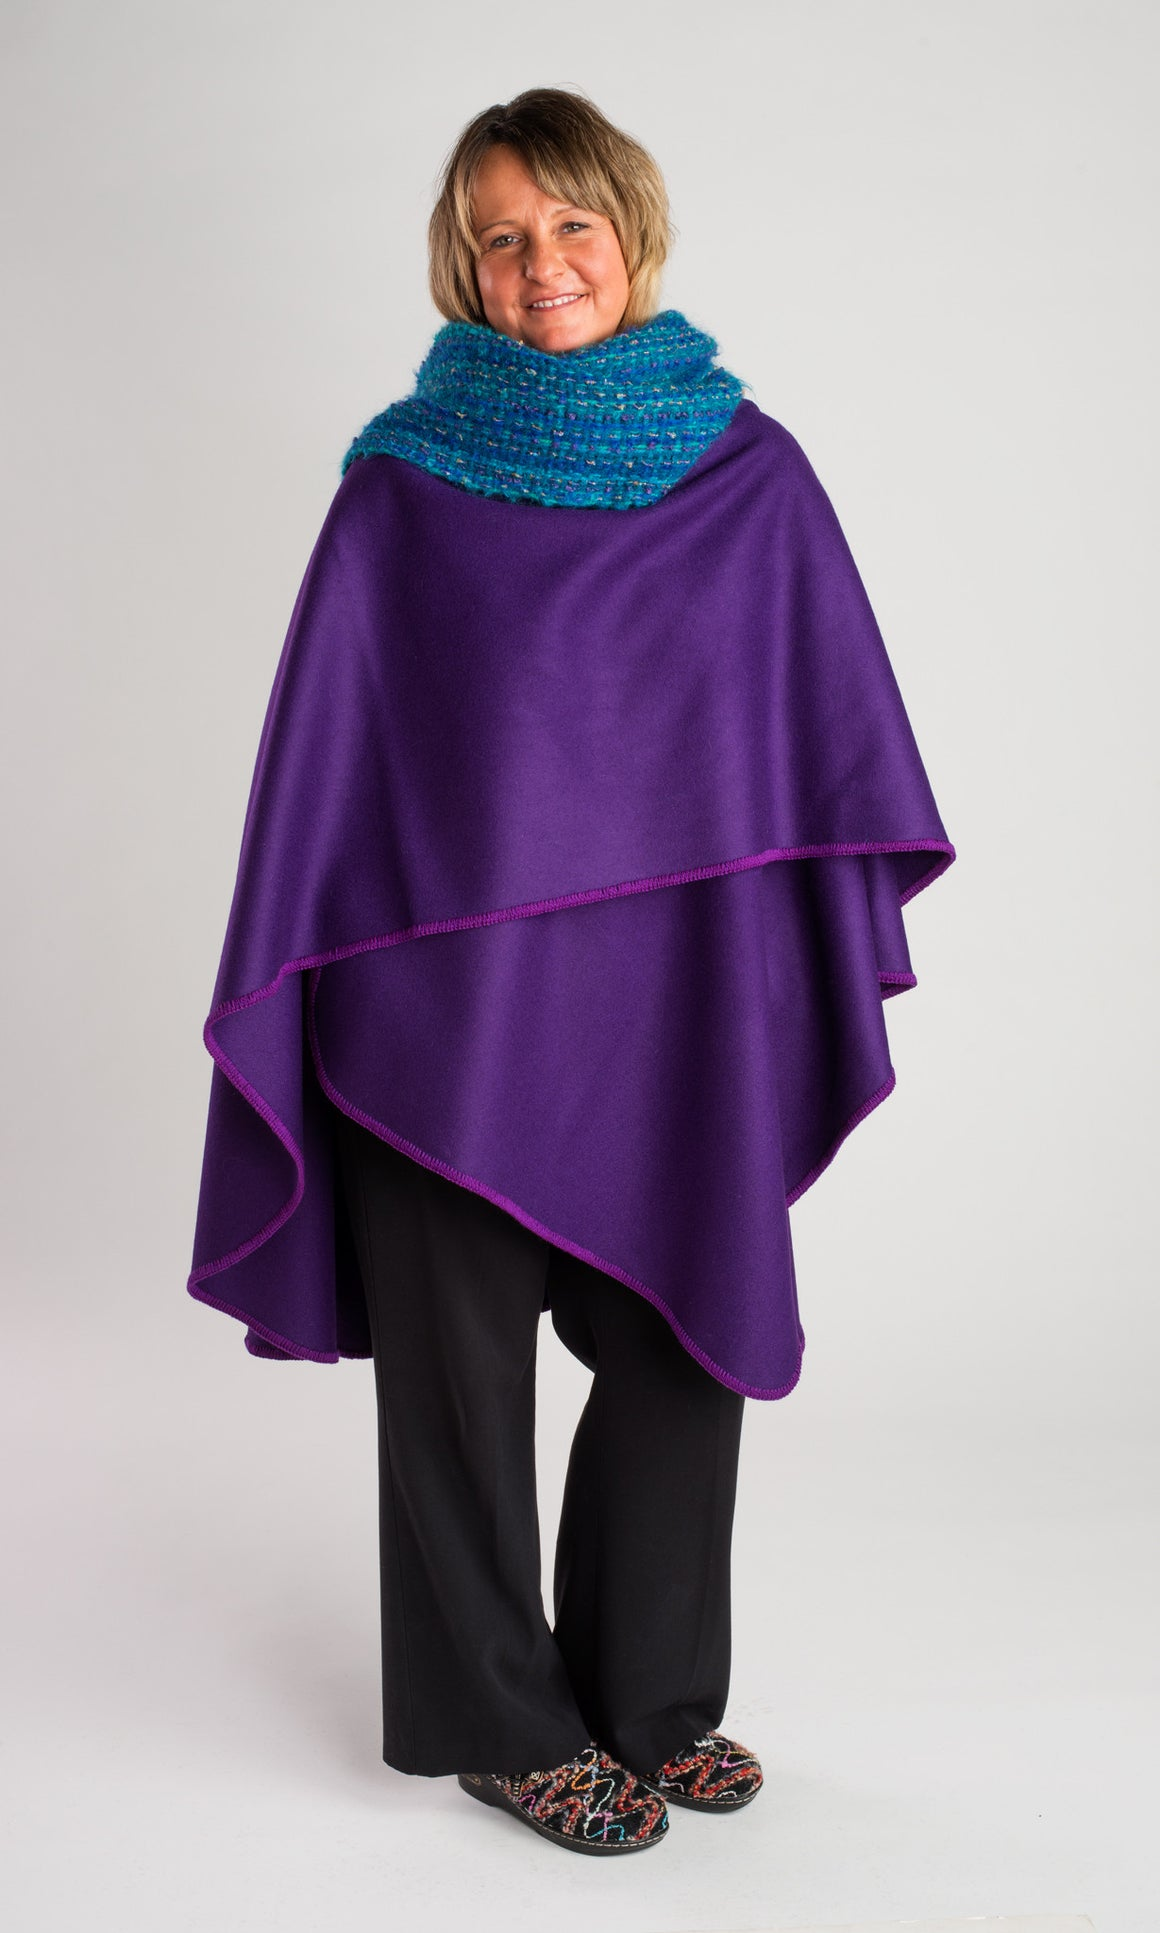 Calendar Island Merino Wool Shawl - Royal Purple